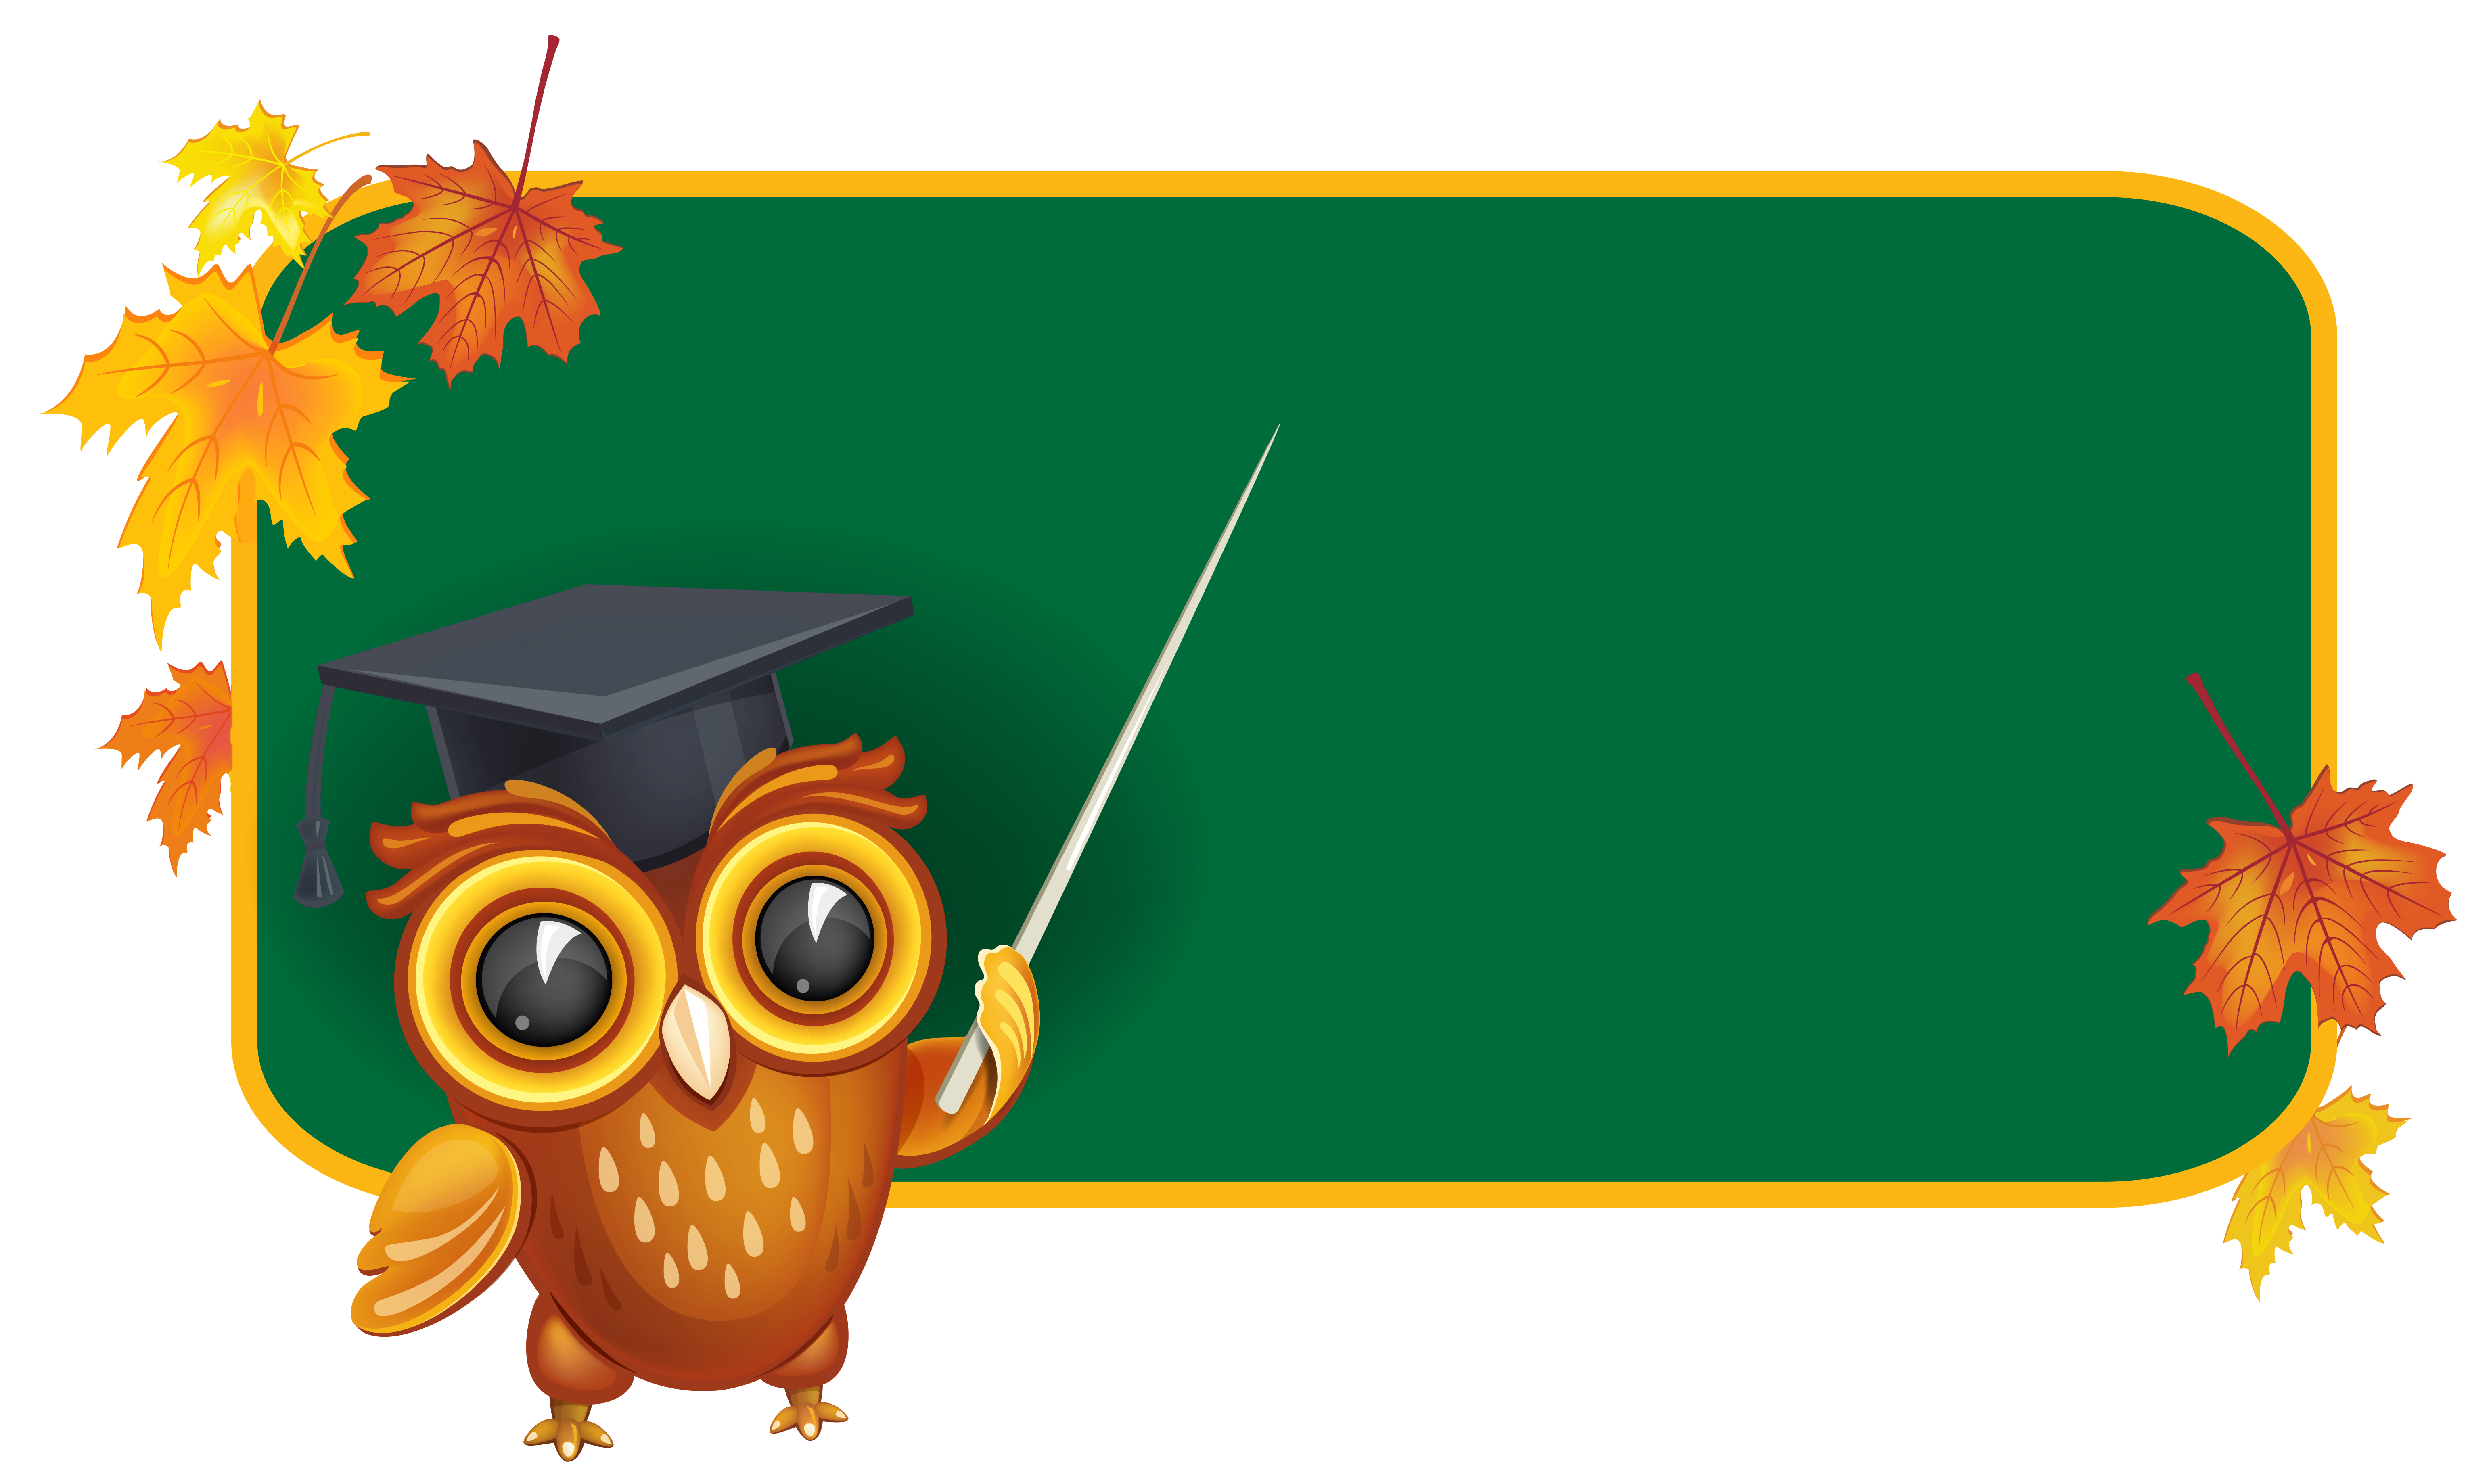 Clipart school owl. With board png image